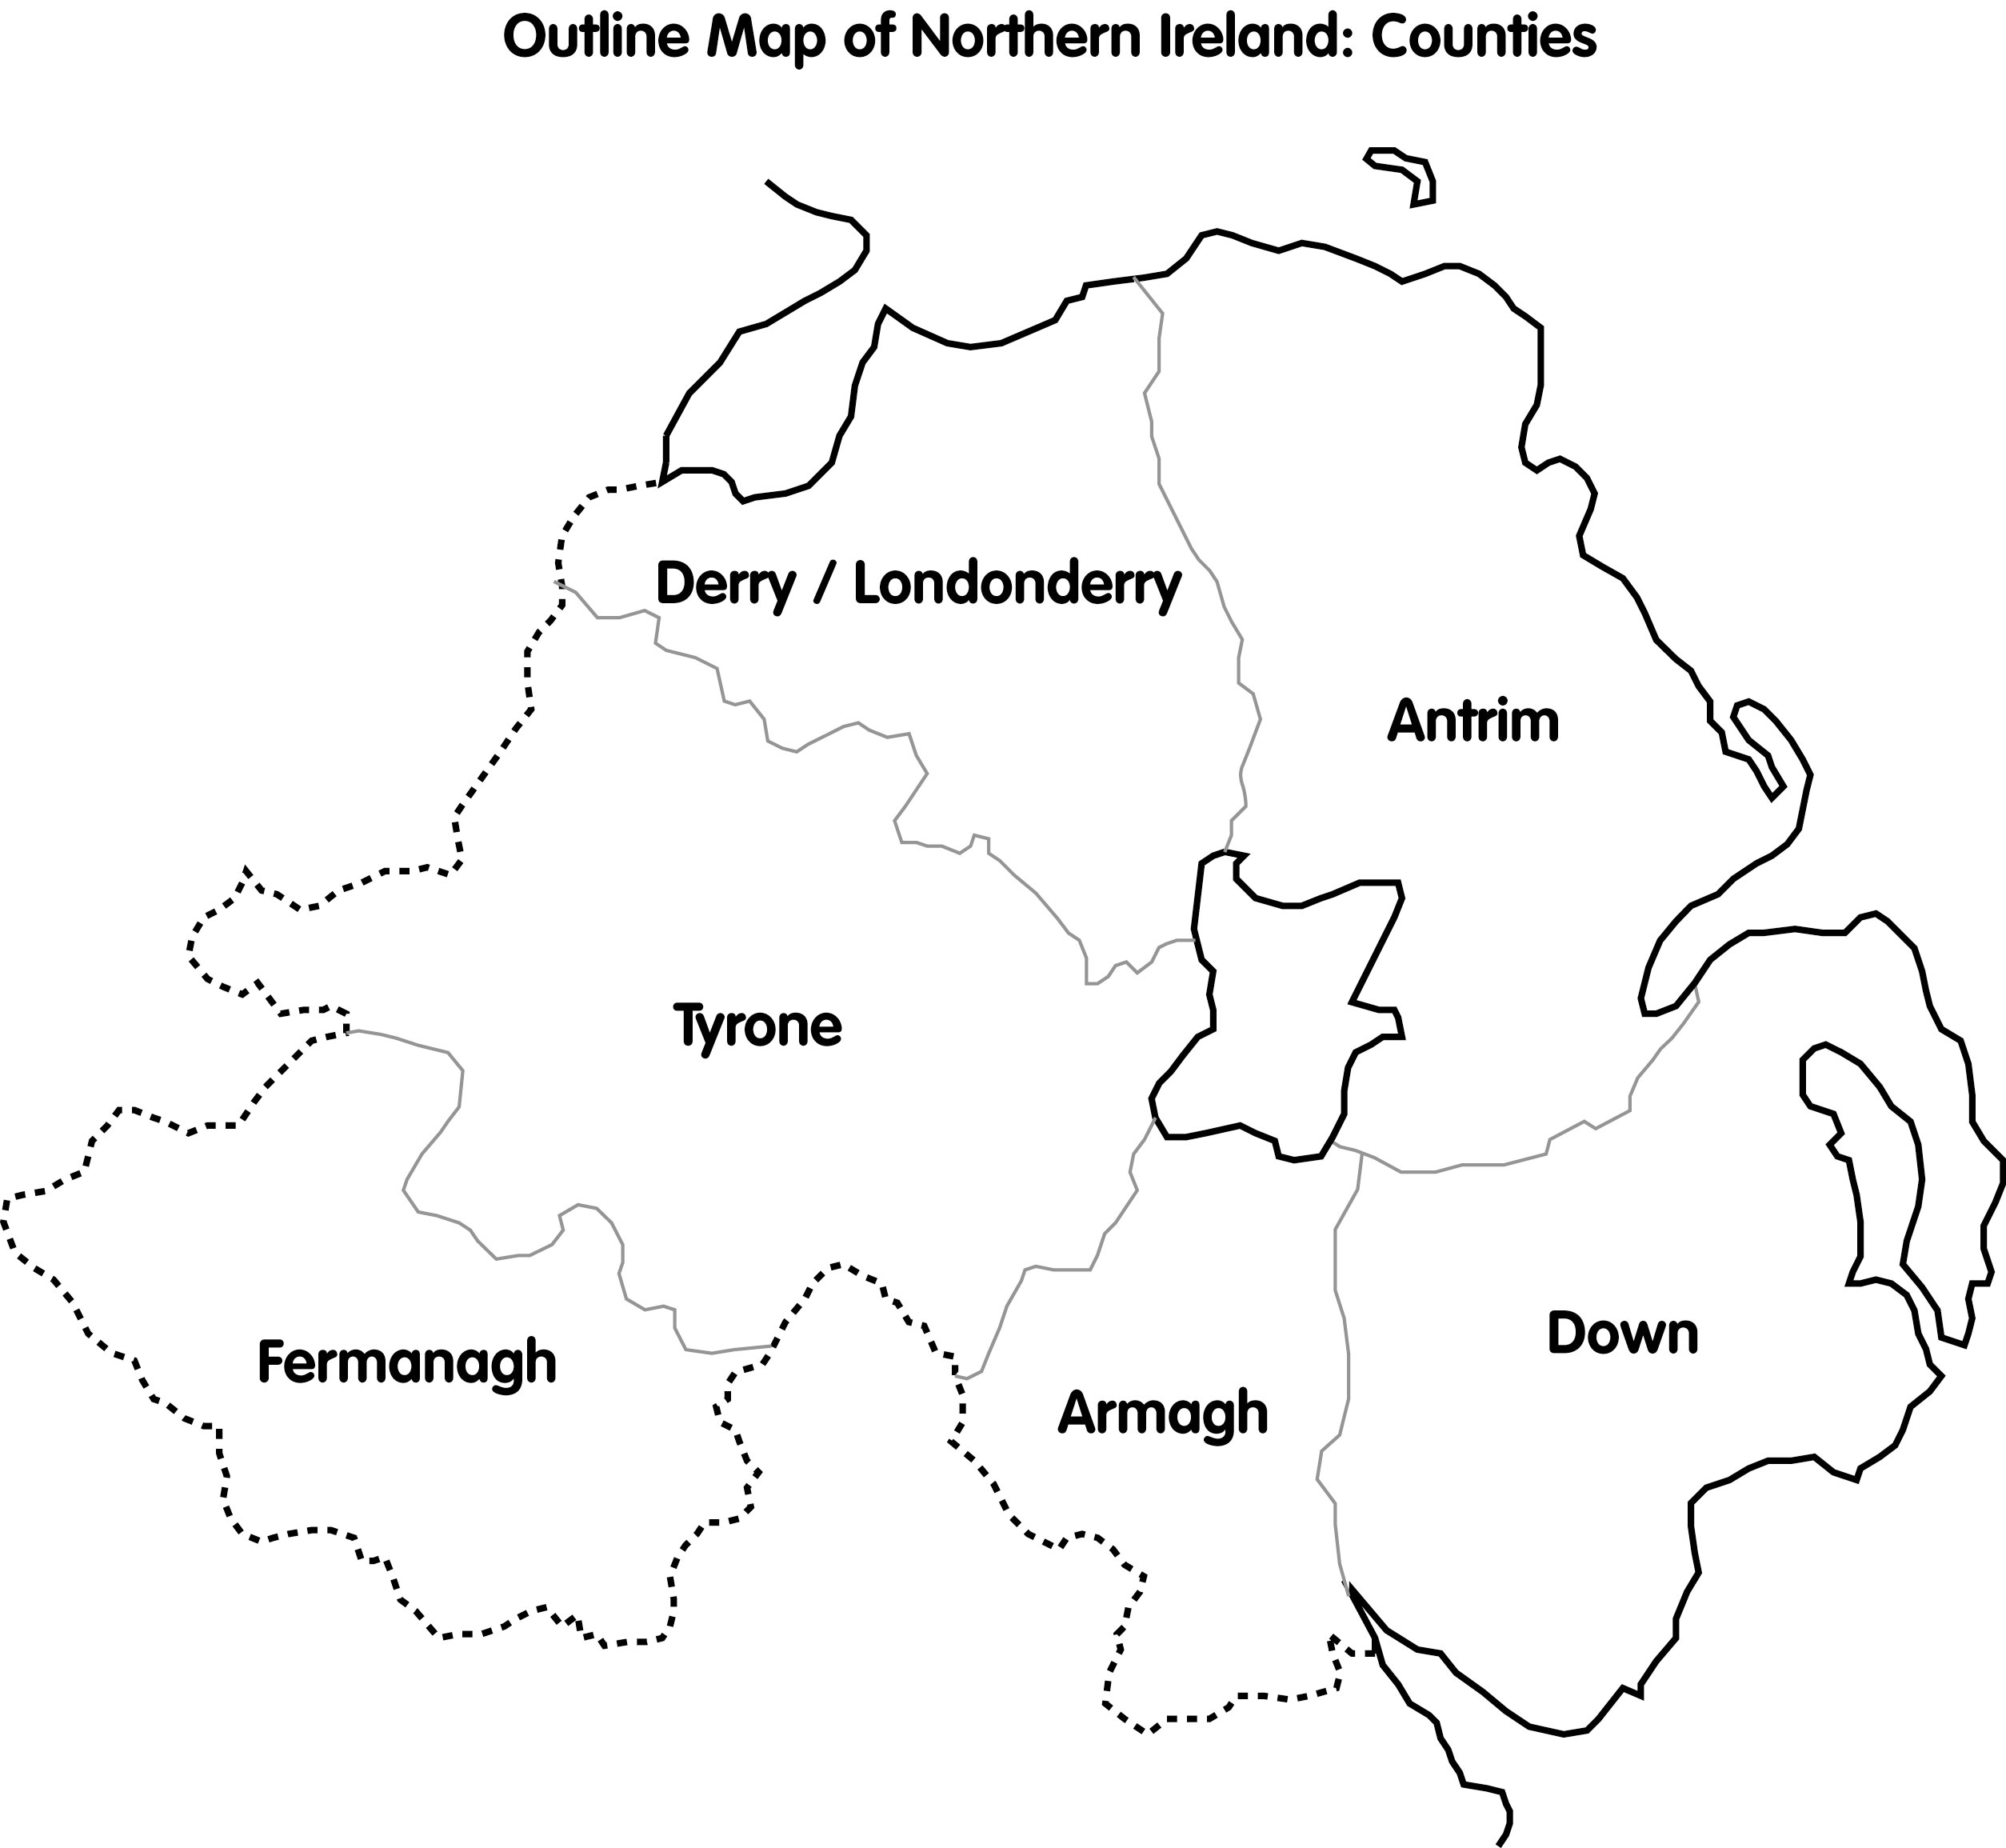 Cain Maps Outline Map Of Northern Ireland Counties